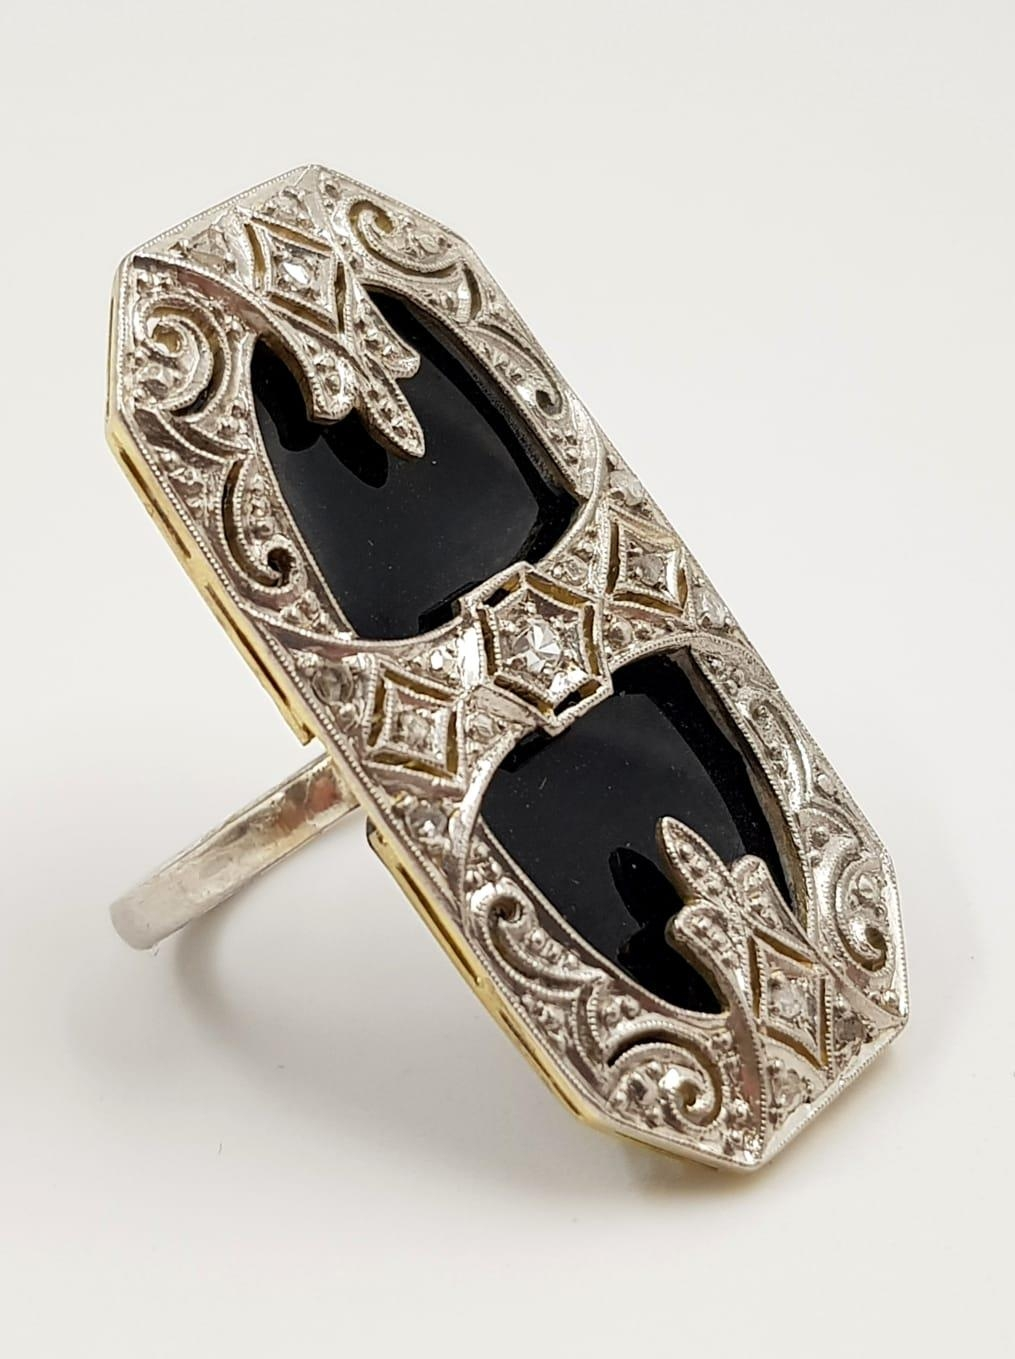 An art deco, platinum and black onyx ring. 6.6g total weight and size J.